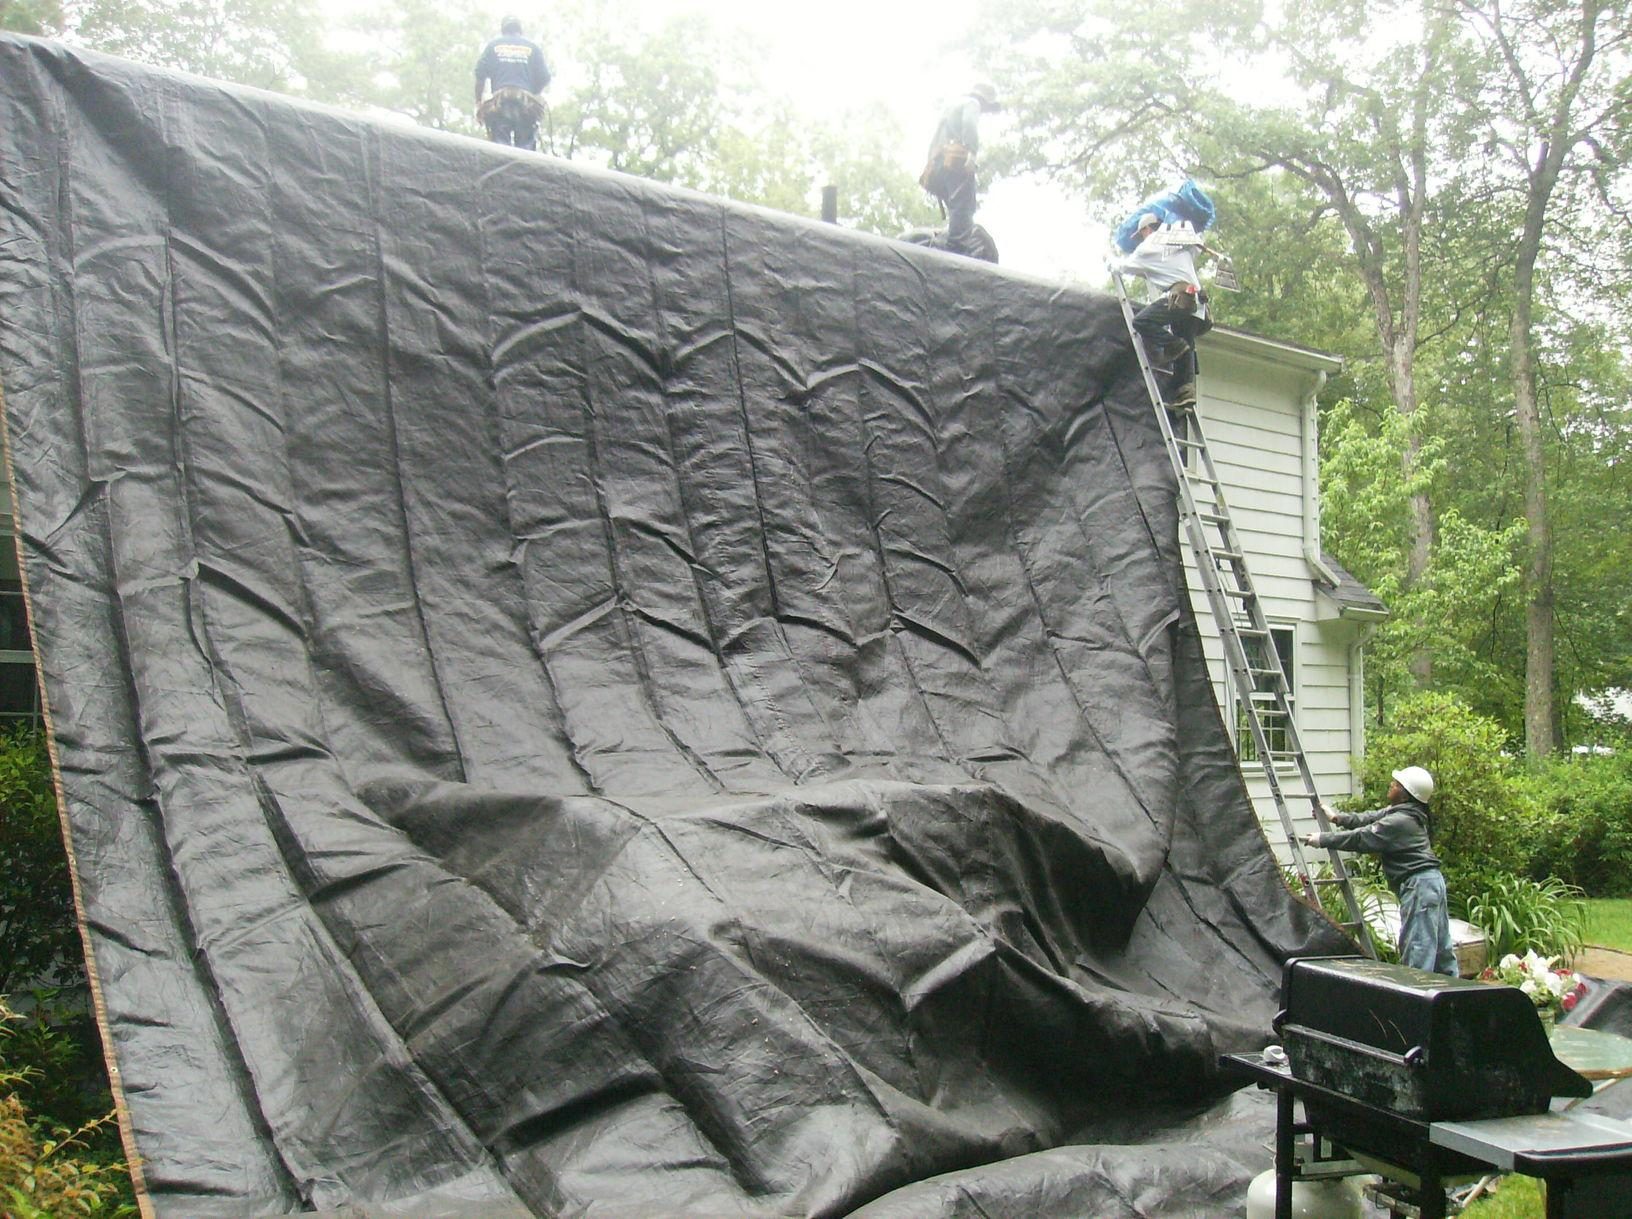 Tarping Off the Roof